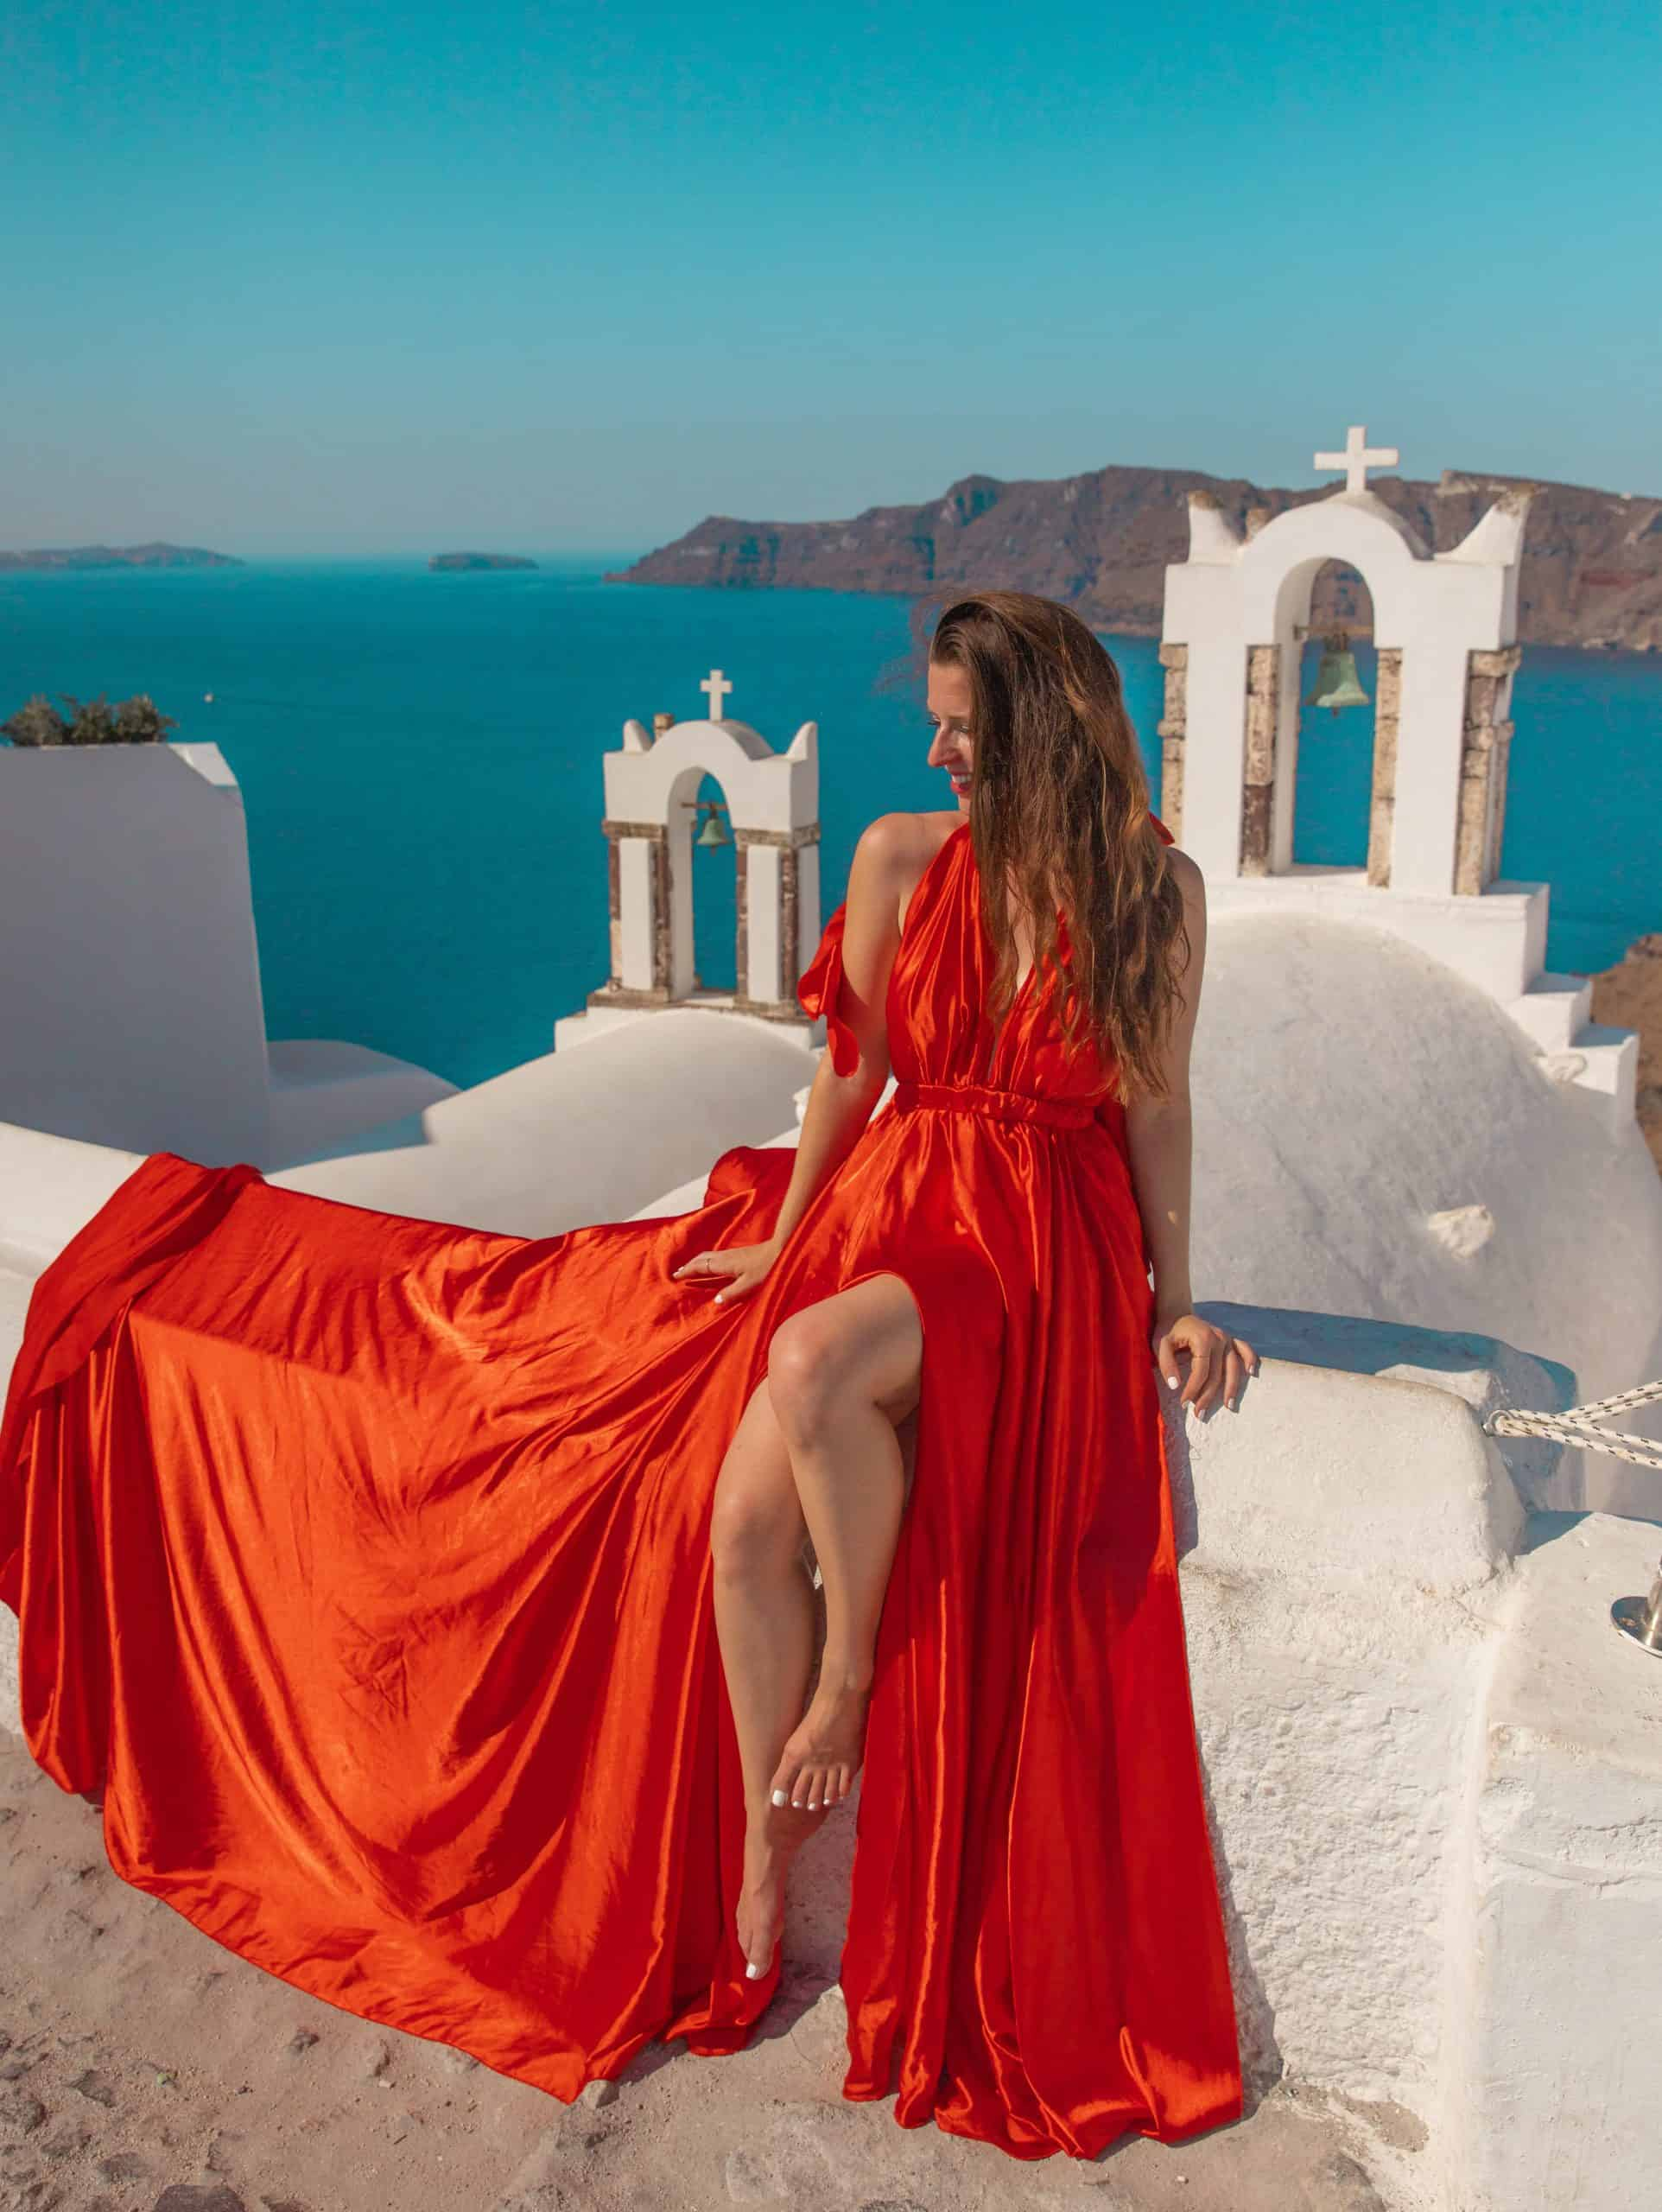 Bettina in Red Dress at Greek Church Bells with Ocean Views in Oia Santorini